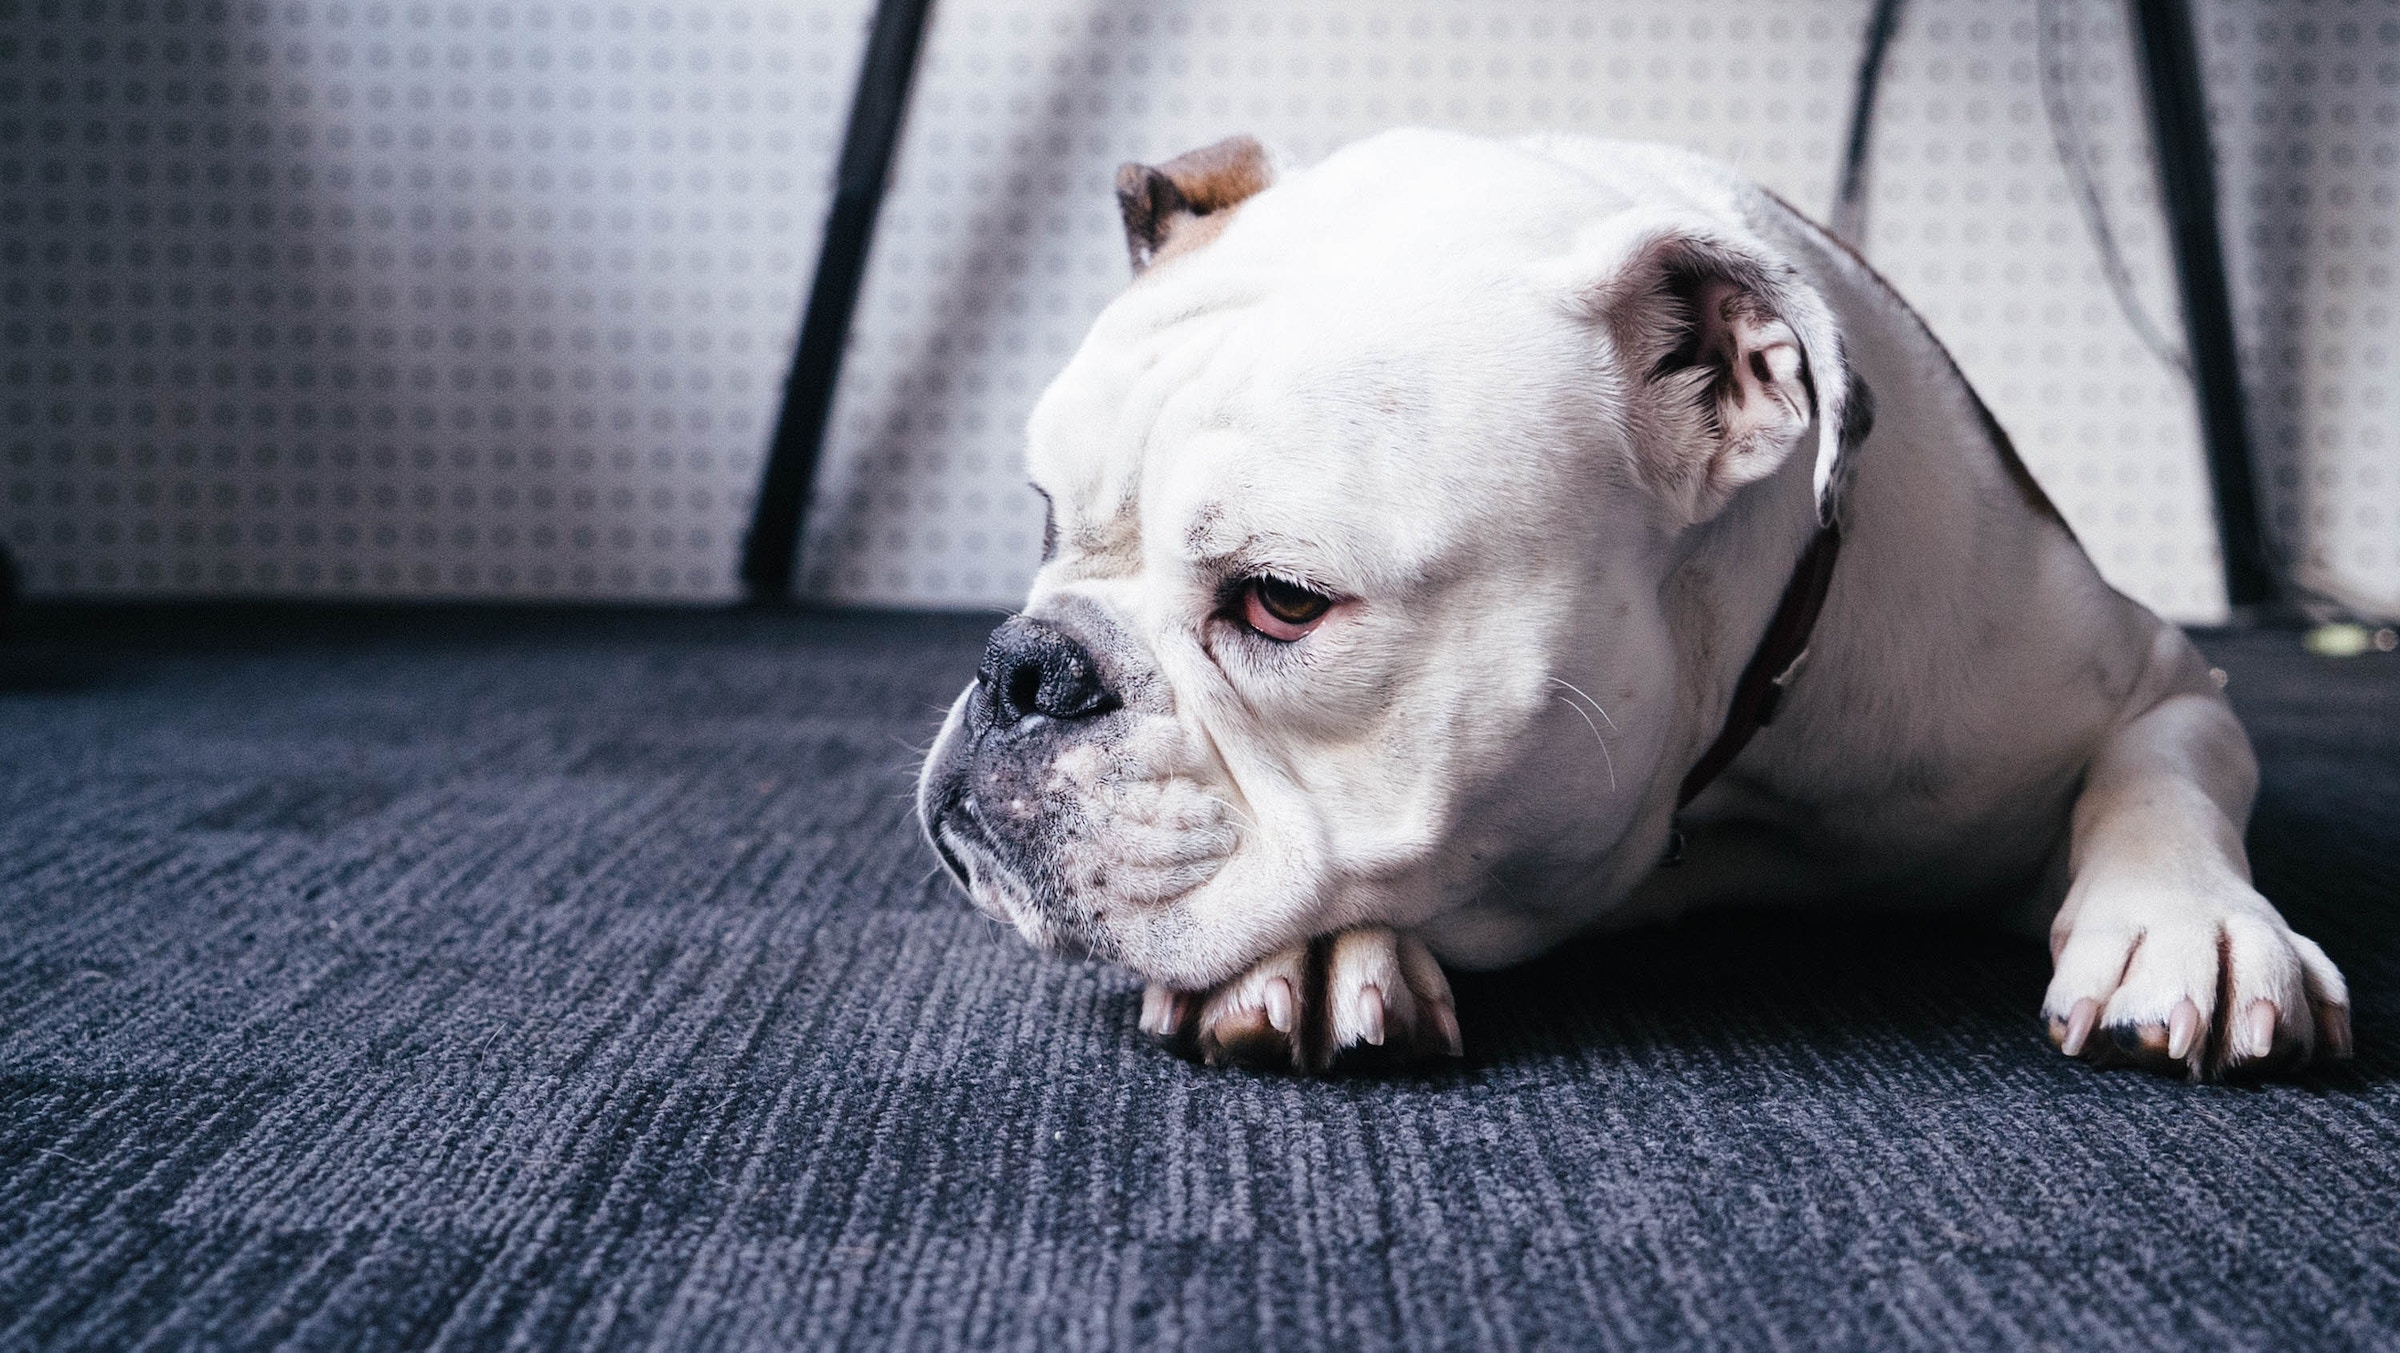 Grumpy bulldog on a carpet